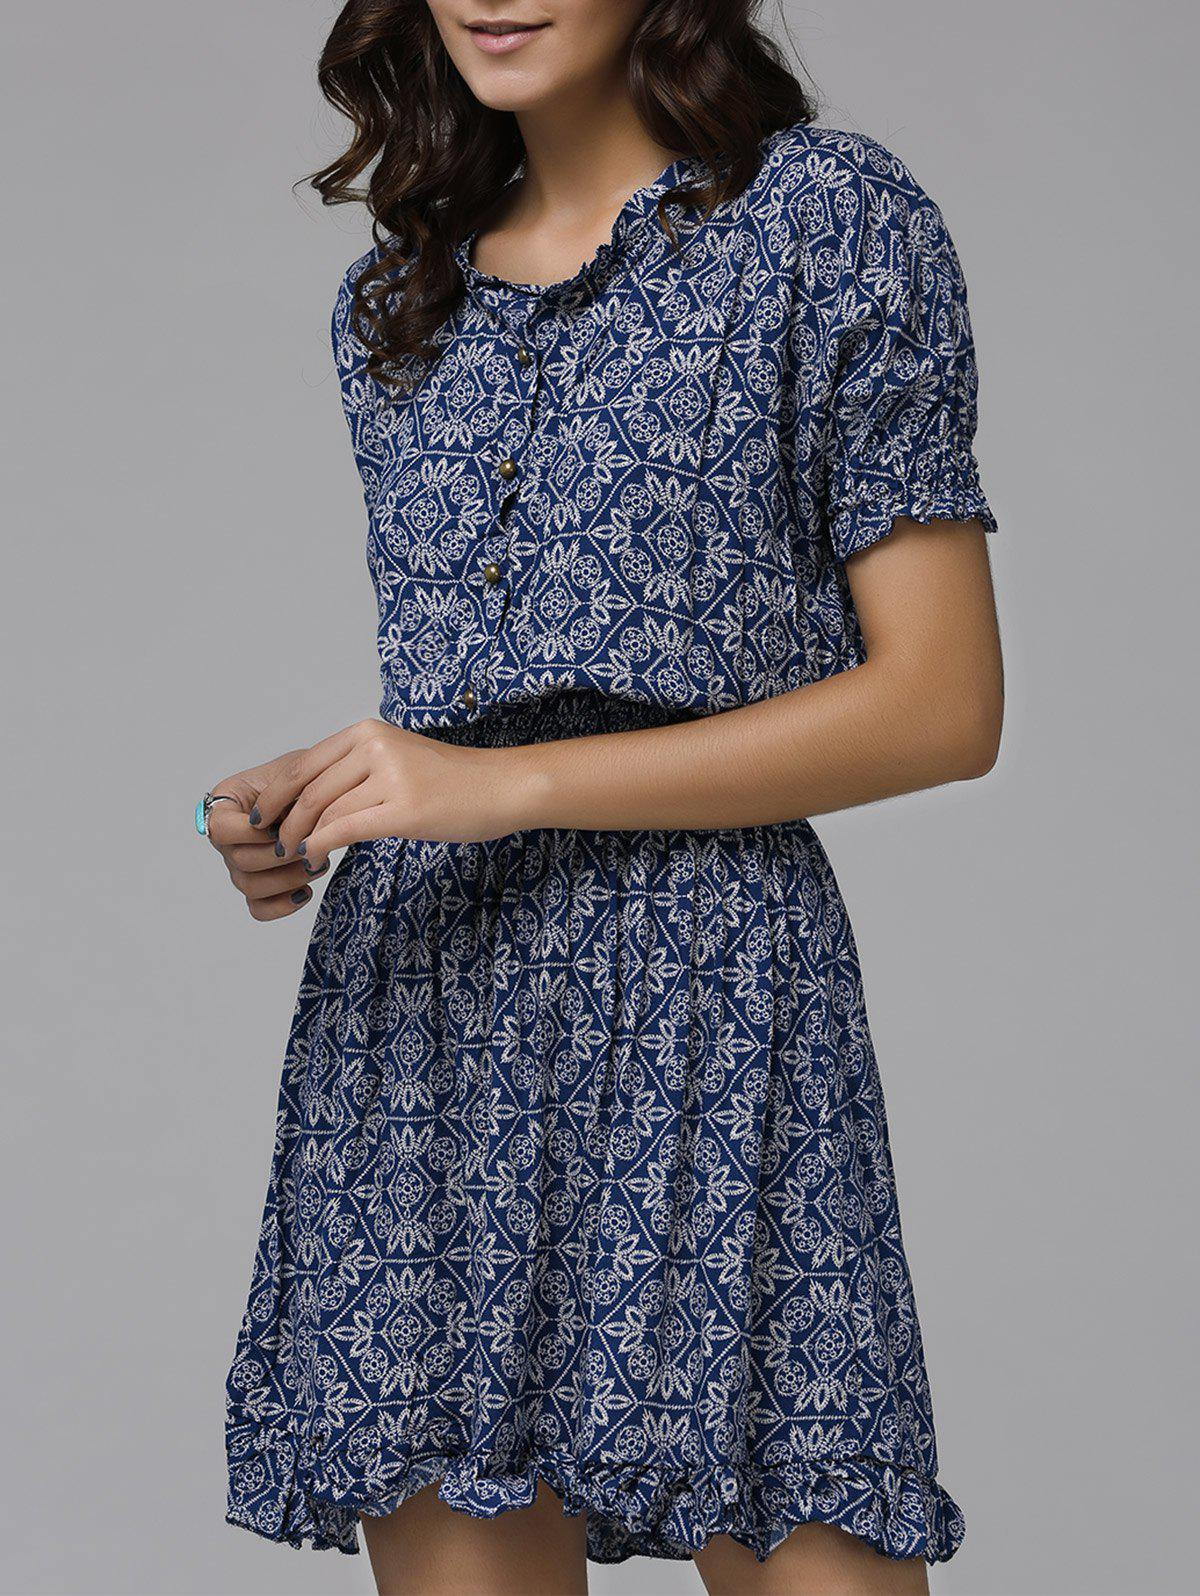 Print Front Button Frilled Women's Dress - PURPLISH BLUE XL